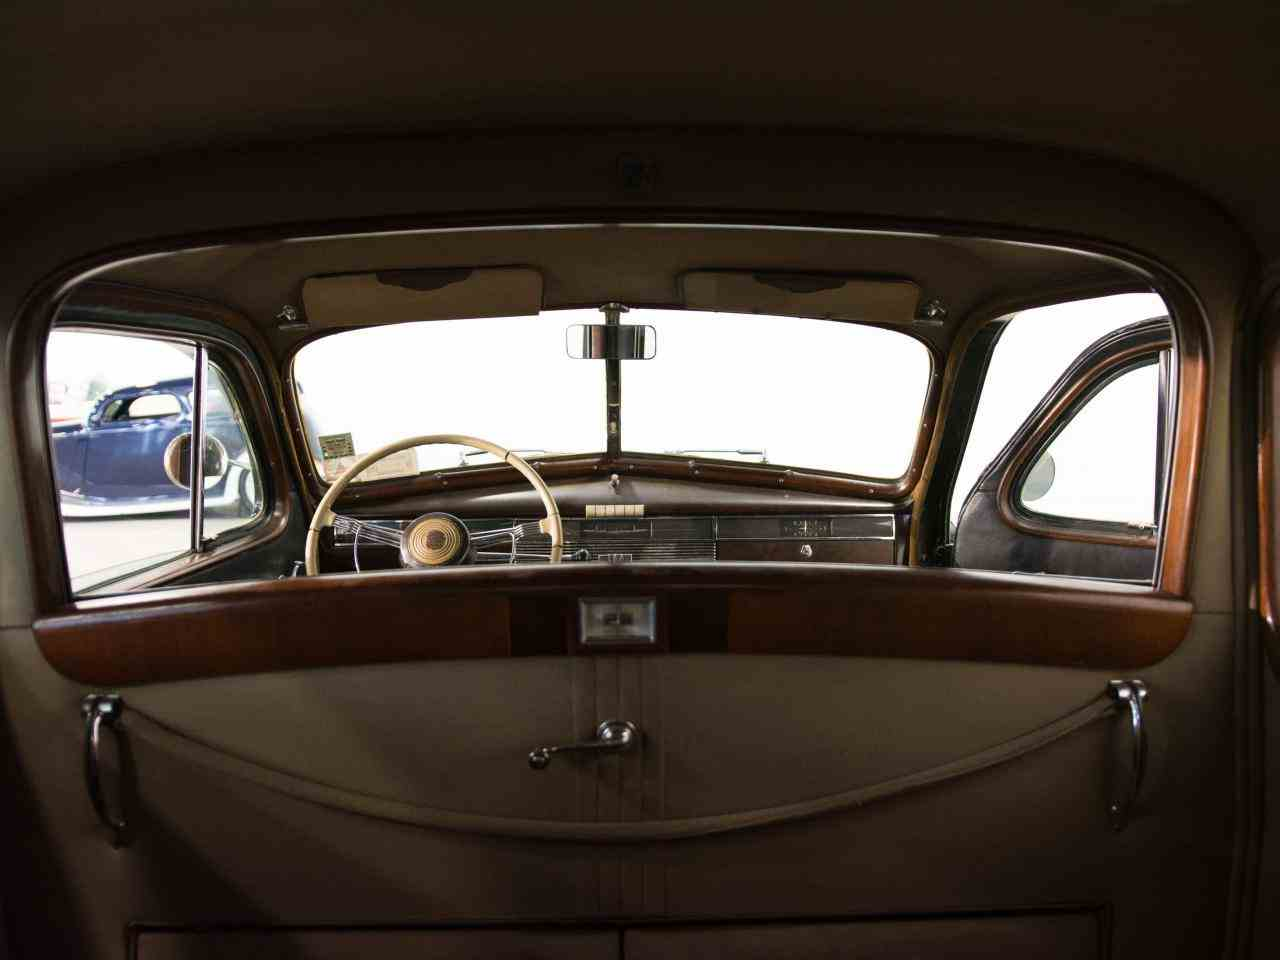 Large Picture of 1939 Cadillac 7 Passenger Touring W/ Trunk - $58,000.00 Offered by Gateway Classic Cars - Milwaukee - KHP0